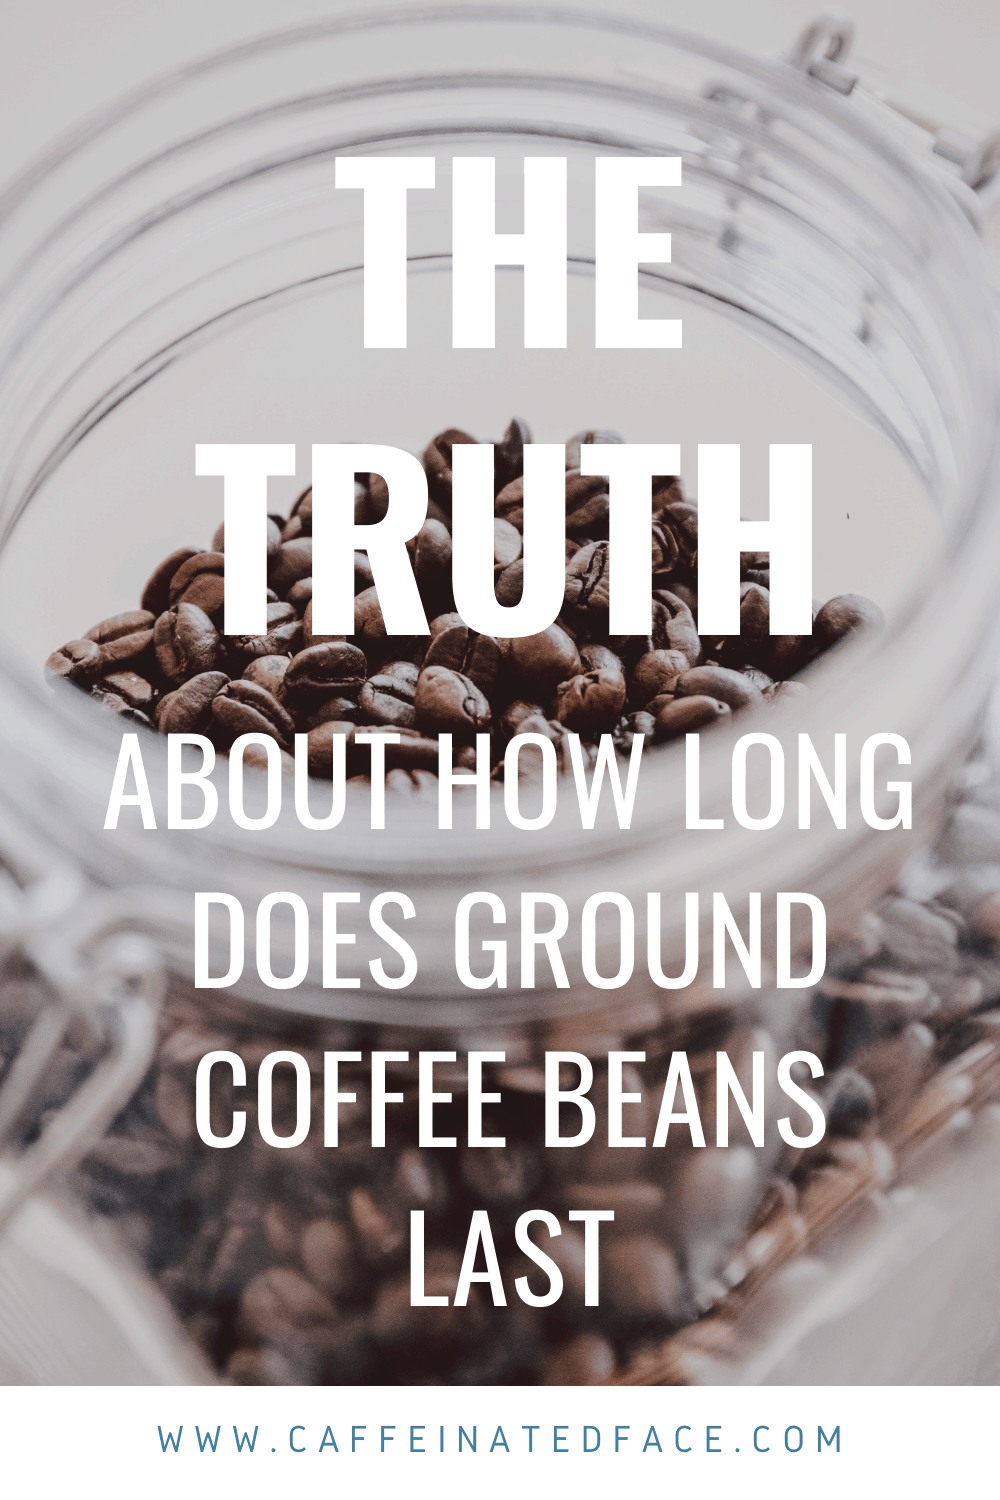 HOW LONG DOES GROUND COFFEE LAST (1)